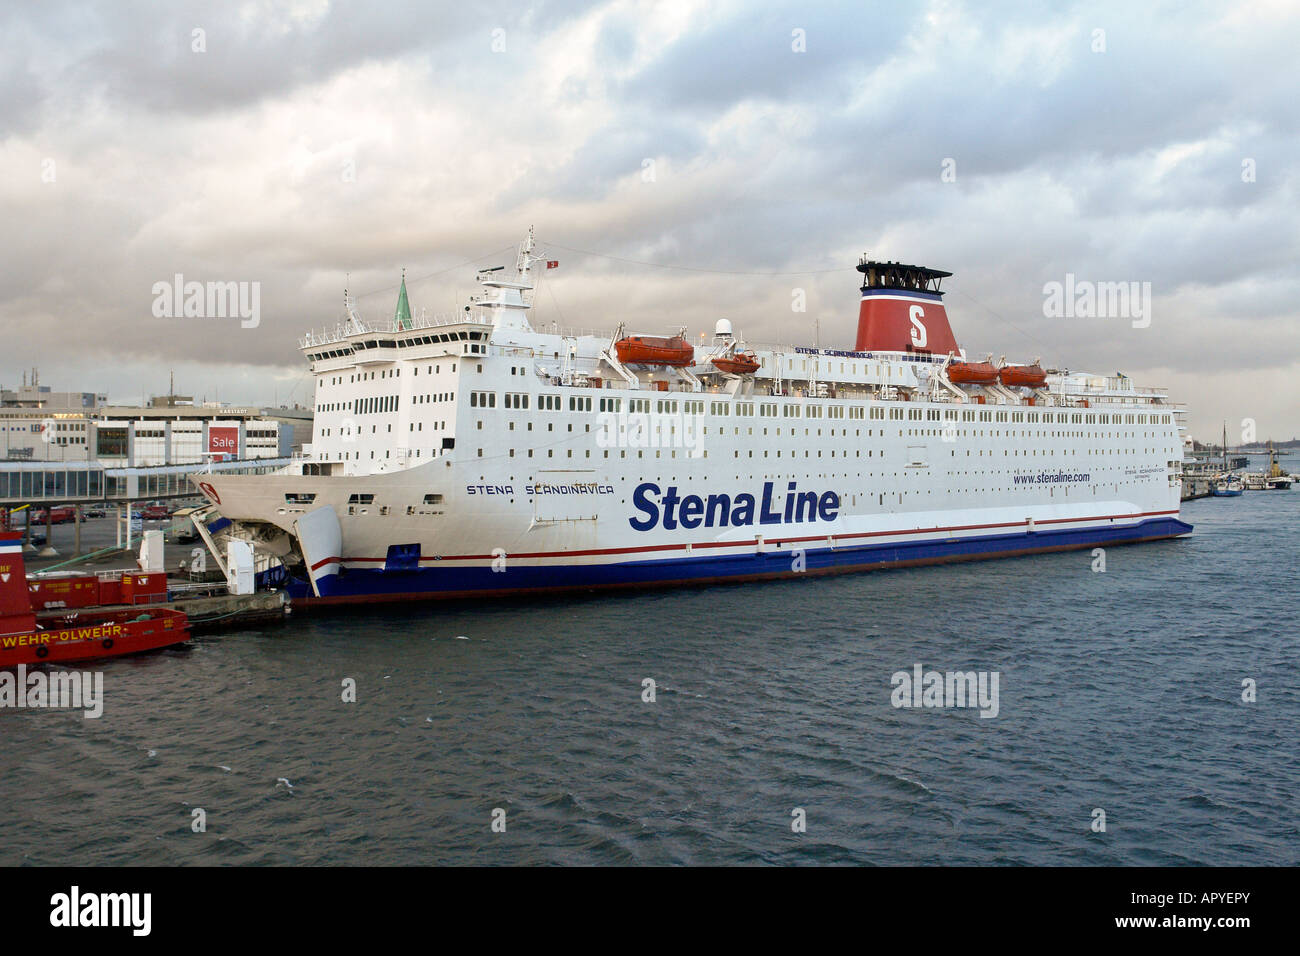 stena line 39 s gothenburg kiel ferry stena scandinavica in kiel harbour stock photo 15888818 alamy. Black Bedroom Furniture Sets. Home Design Ideas